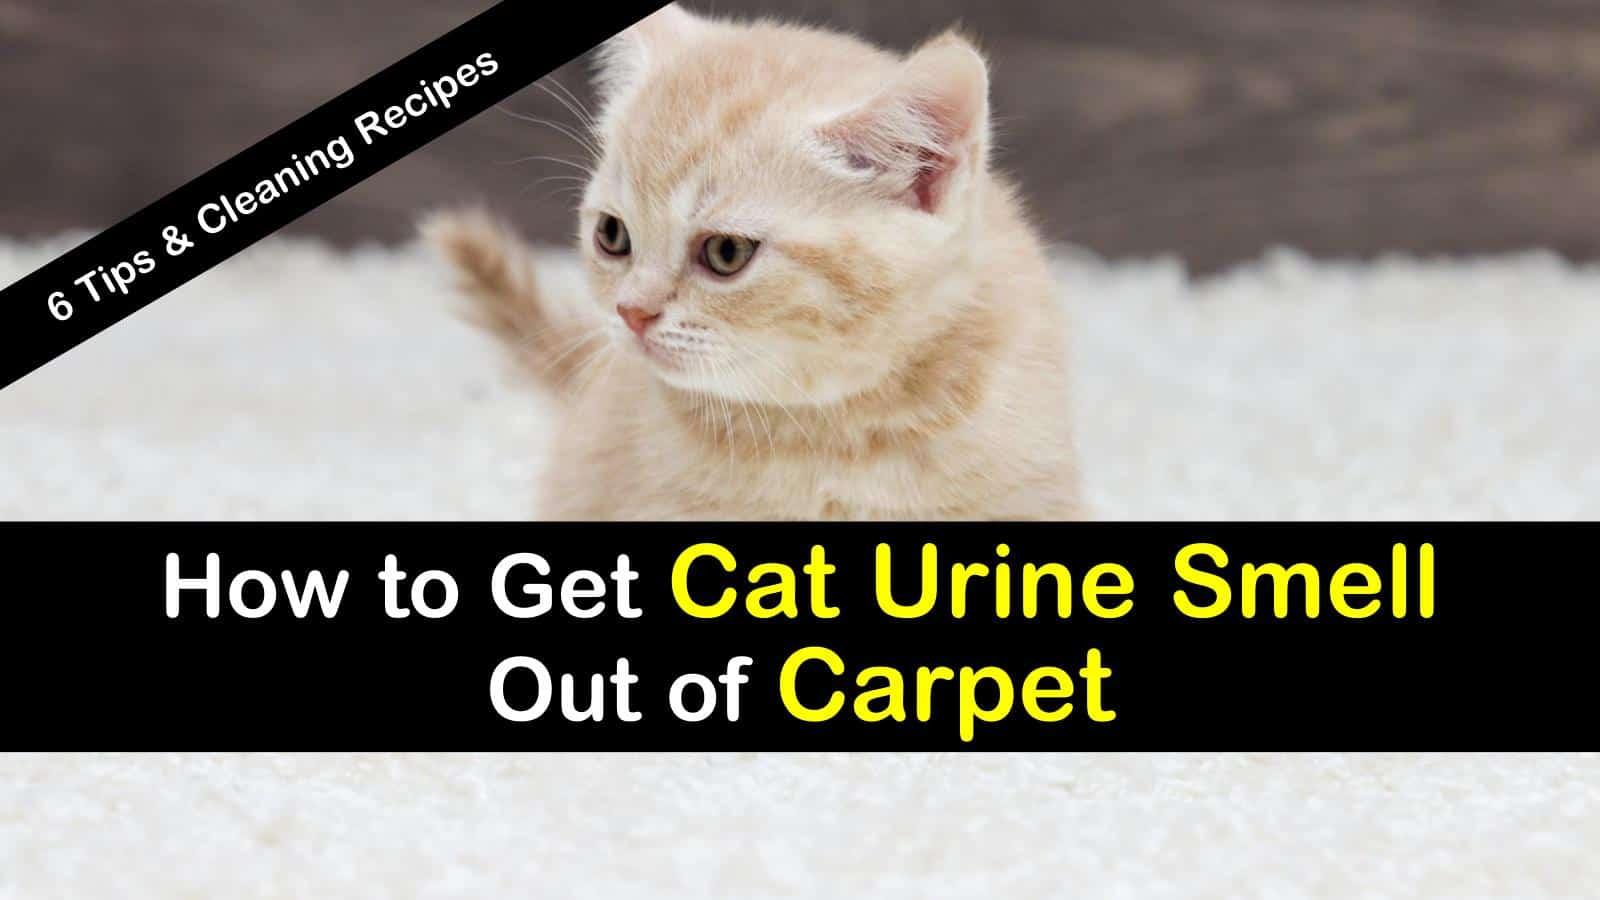 How to Get Cat Urine Smell Out of Carpet